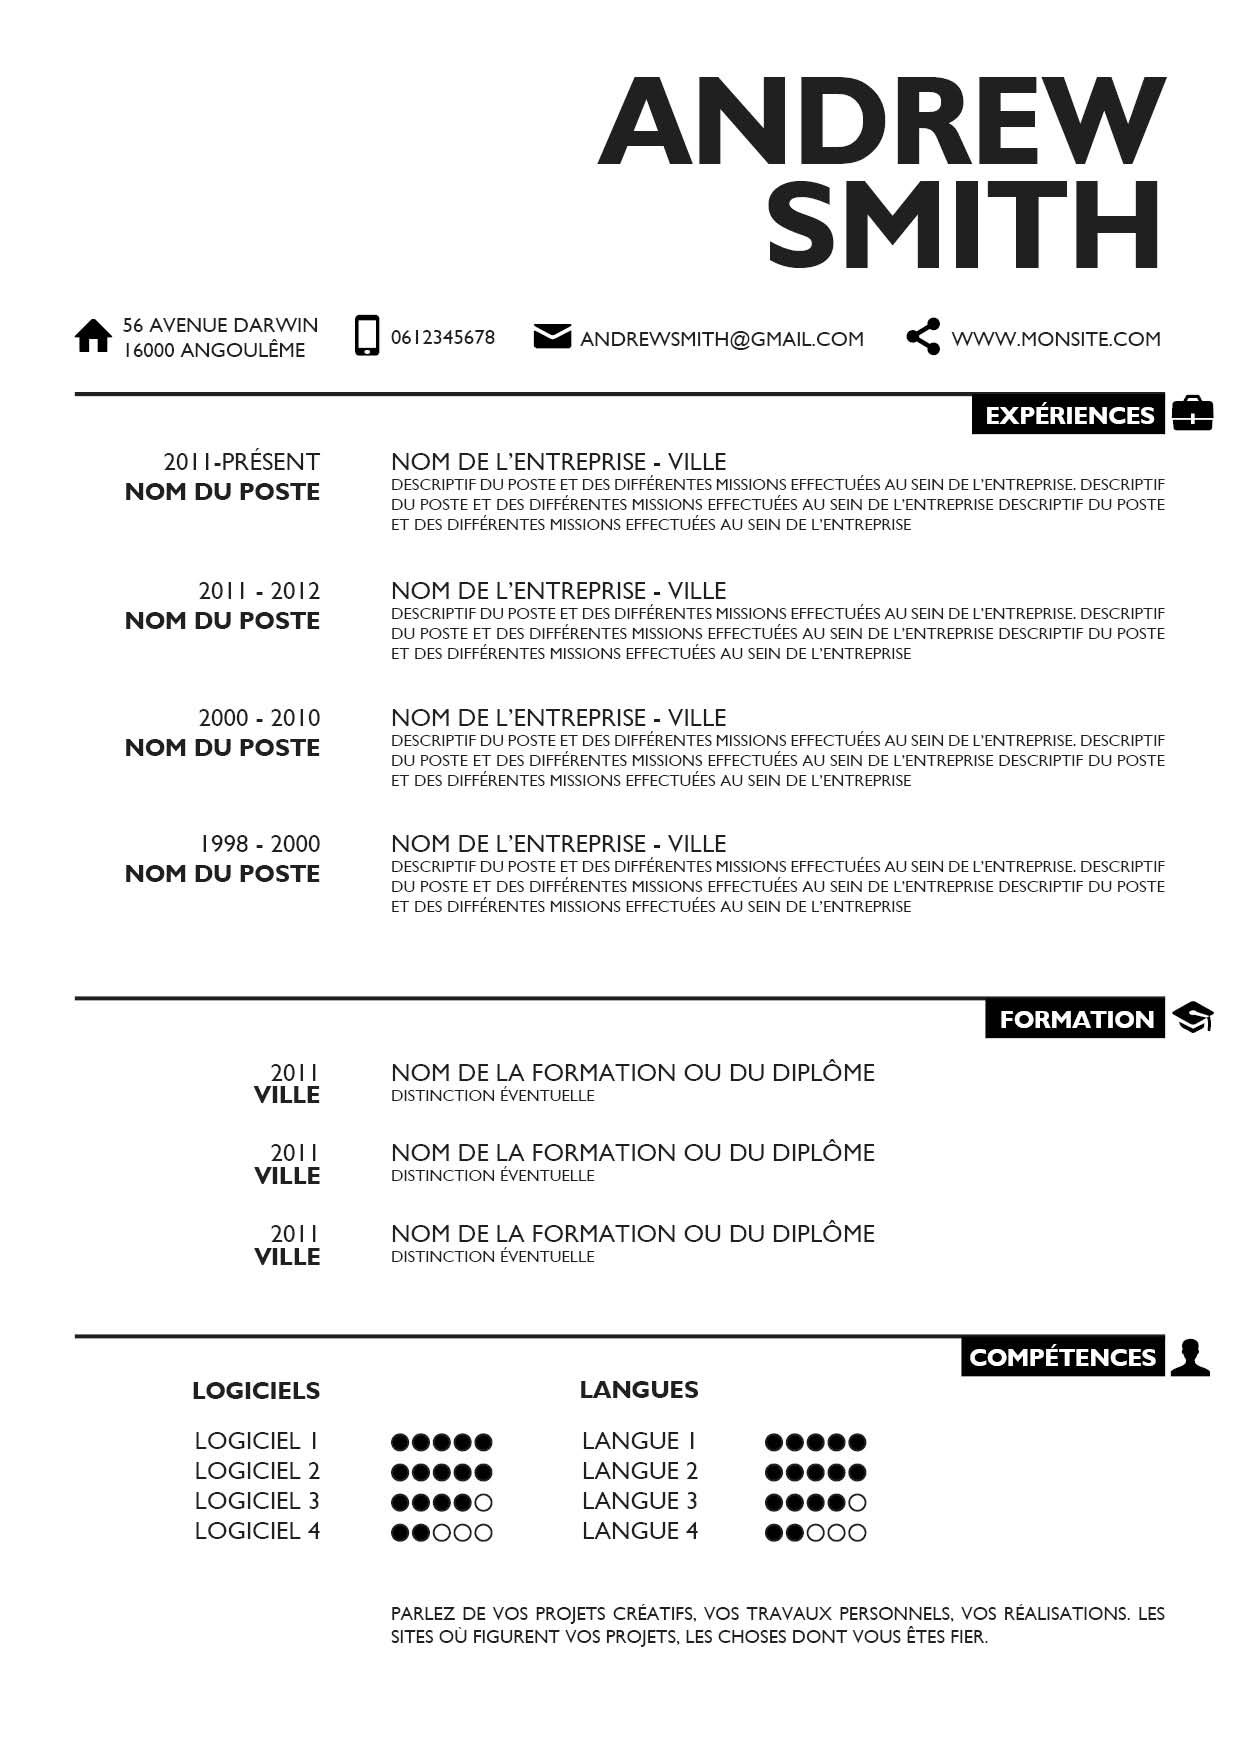 nice resume templates cv design ry style resume layout 23781 | 91b4c7d004f3281be0bf0a0b00f026f0